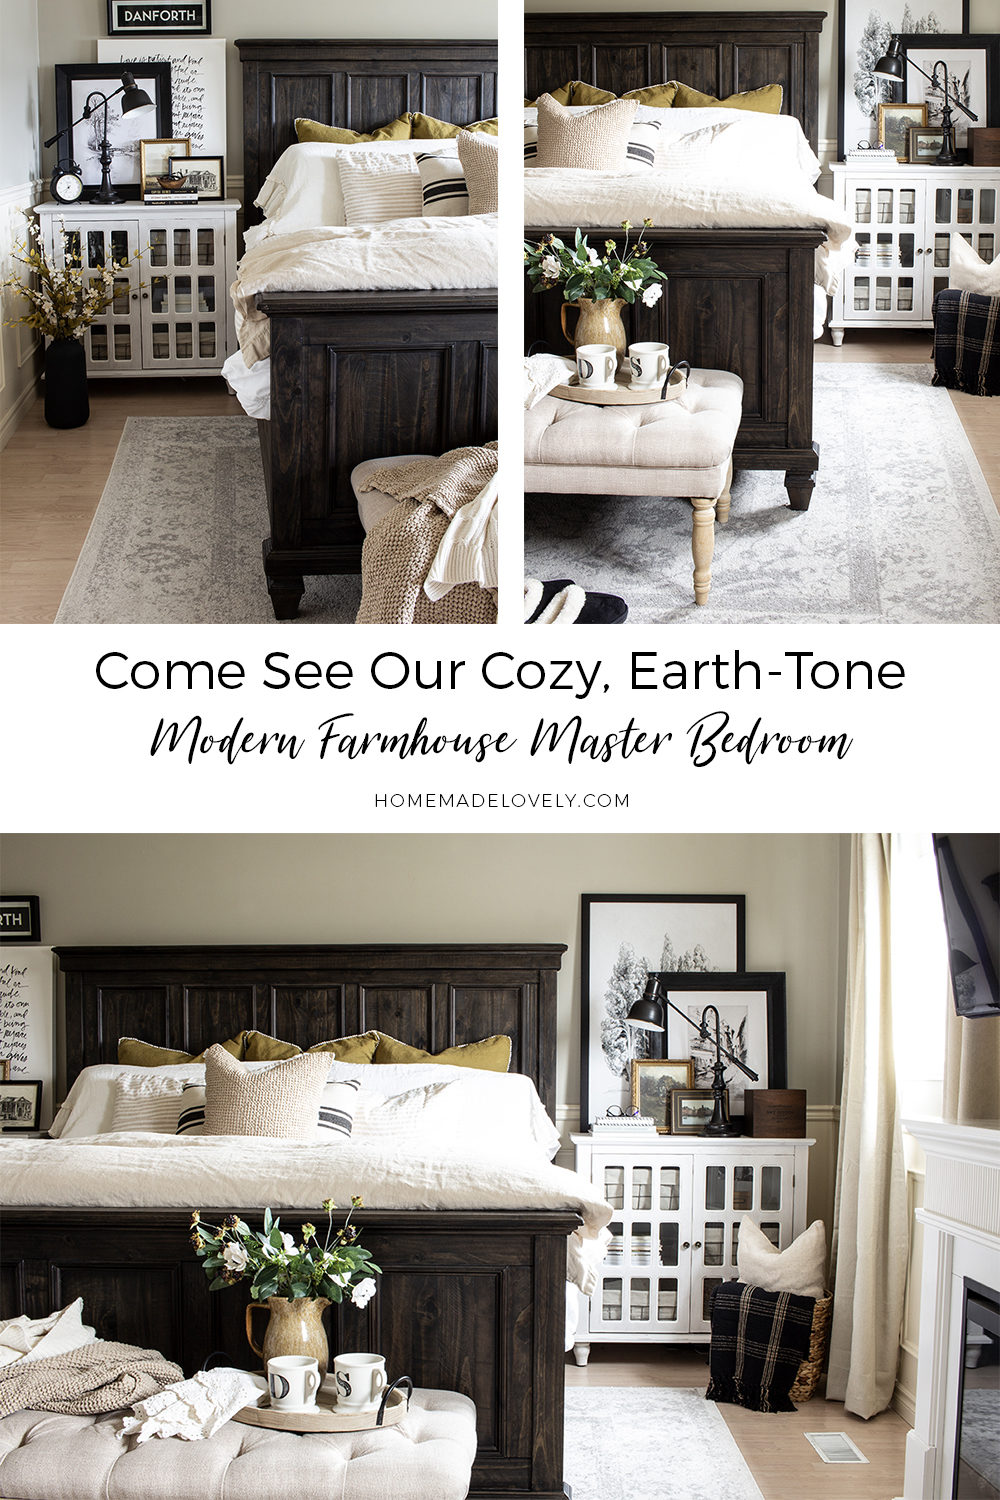 cozy earth-tone modern farmhouse master bedroom